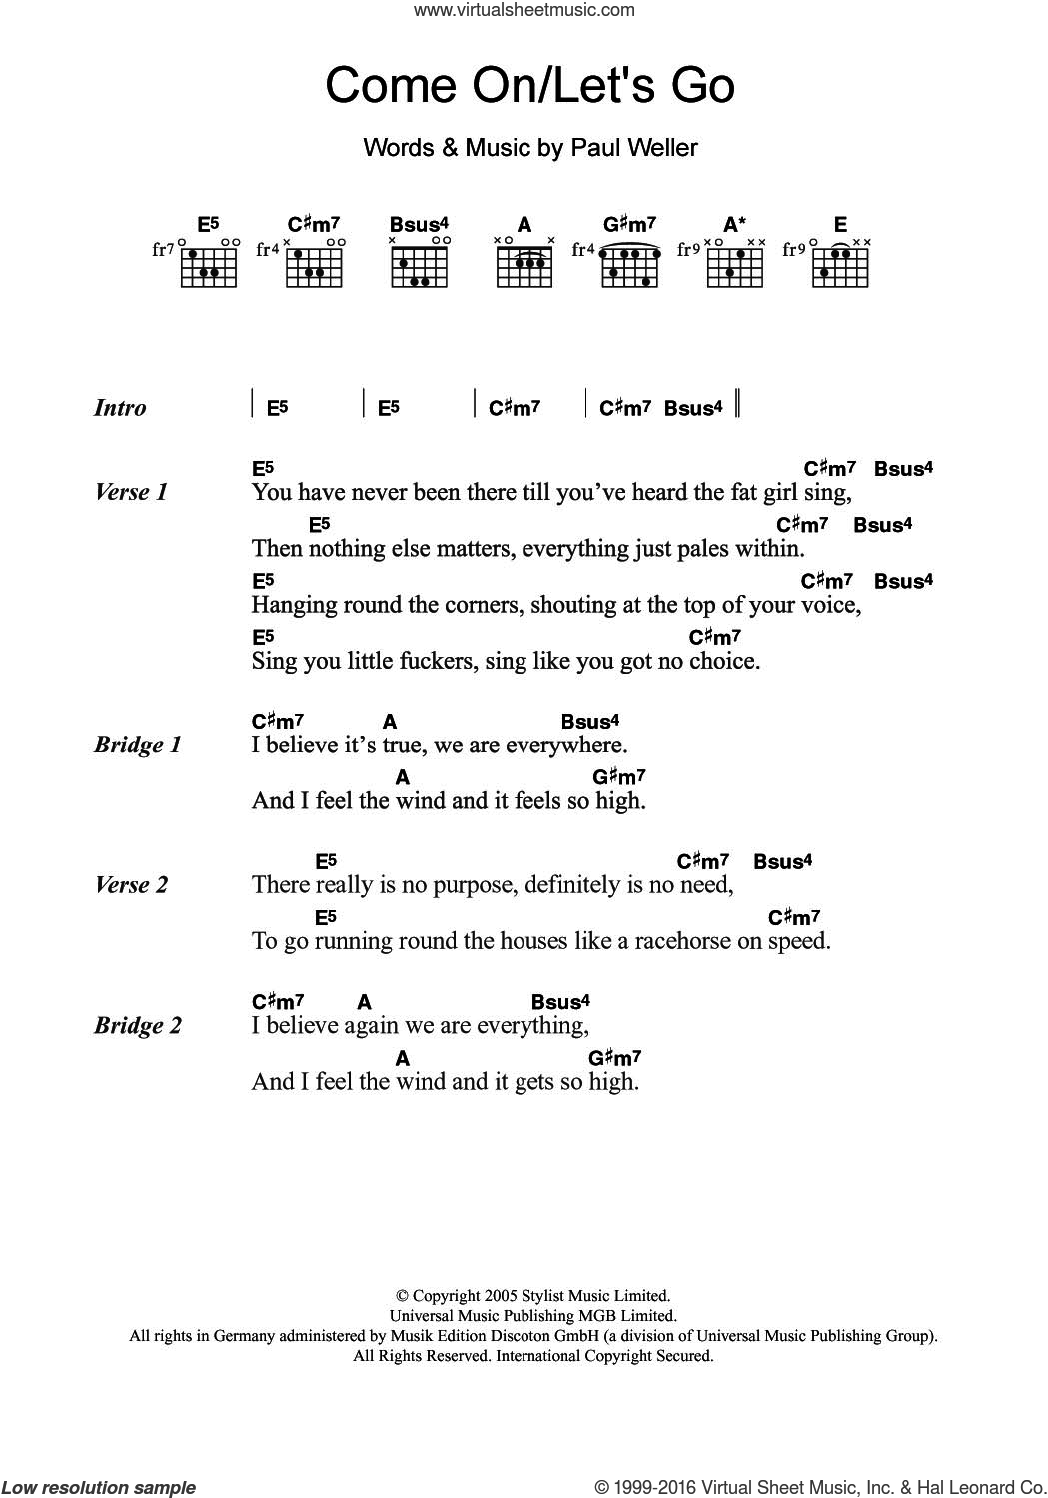 Come On/Let's Go sheet music for guitar (chords) by Paul Weller, intermediate. Score Image Preview.